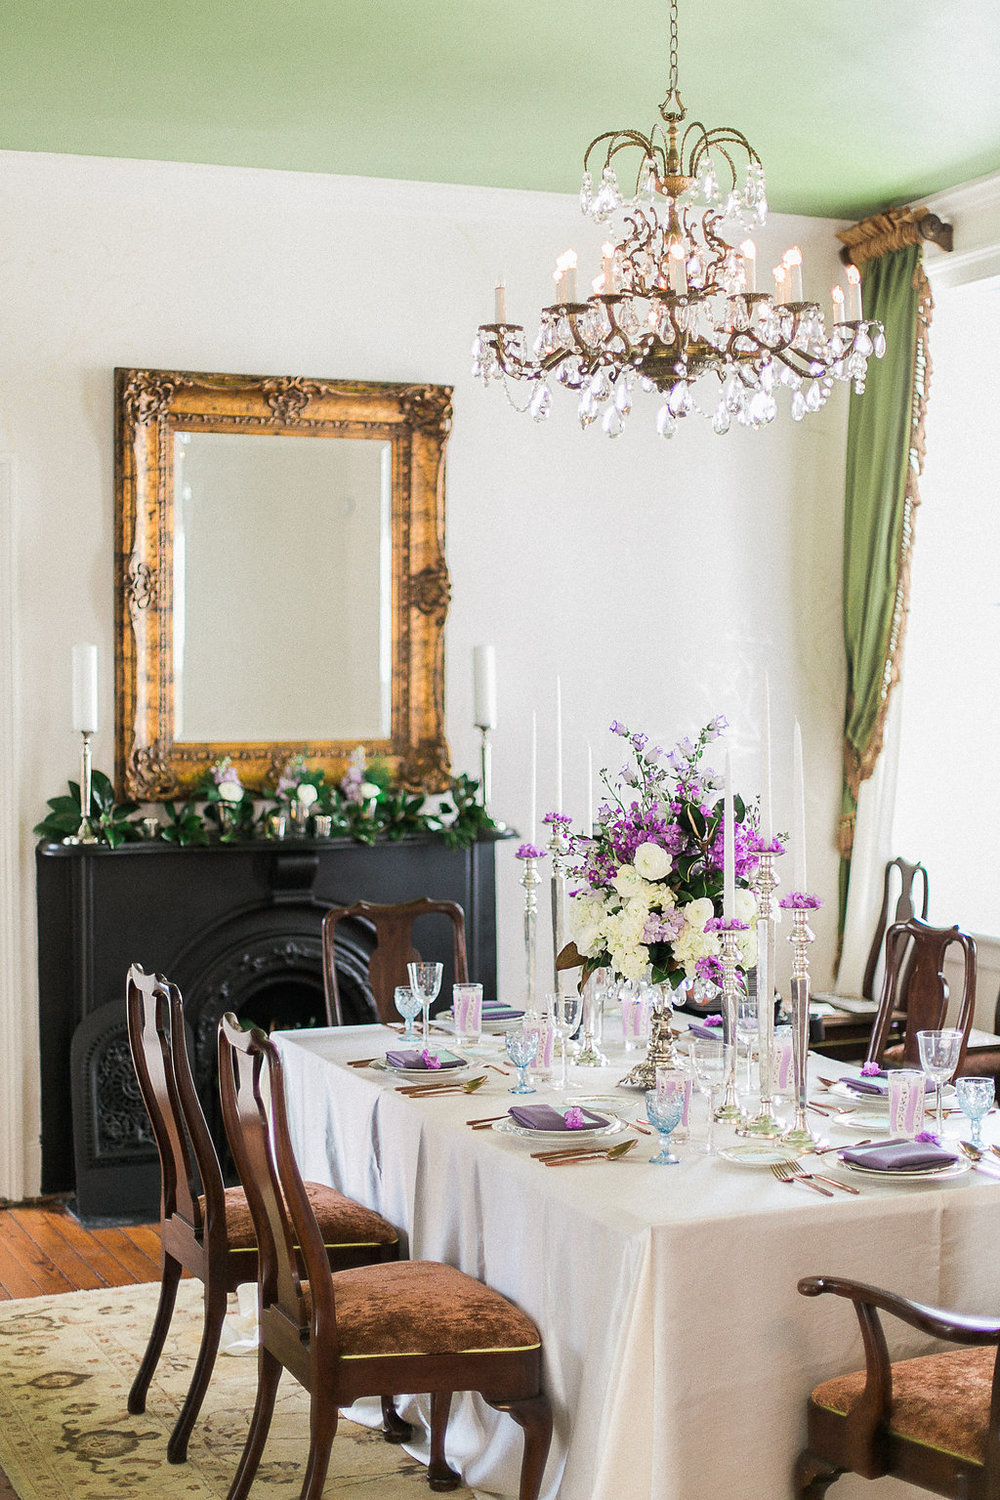 bridal-brunch-the-parsonage-charleston-64.jpg